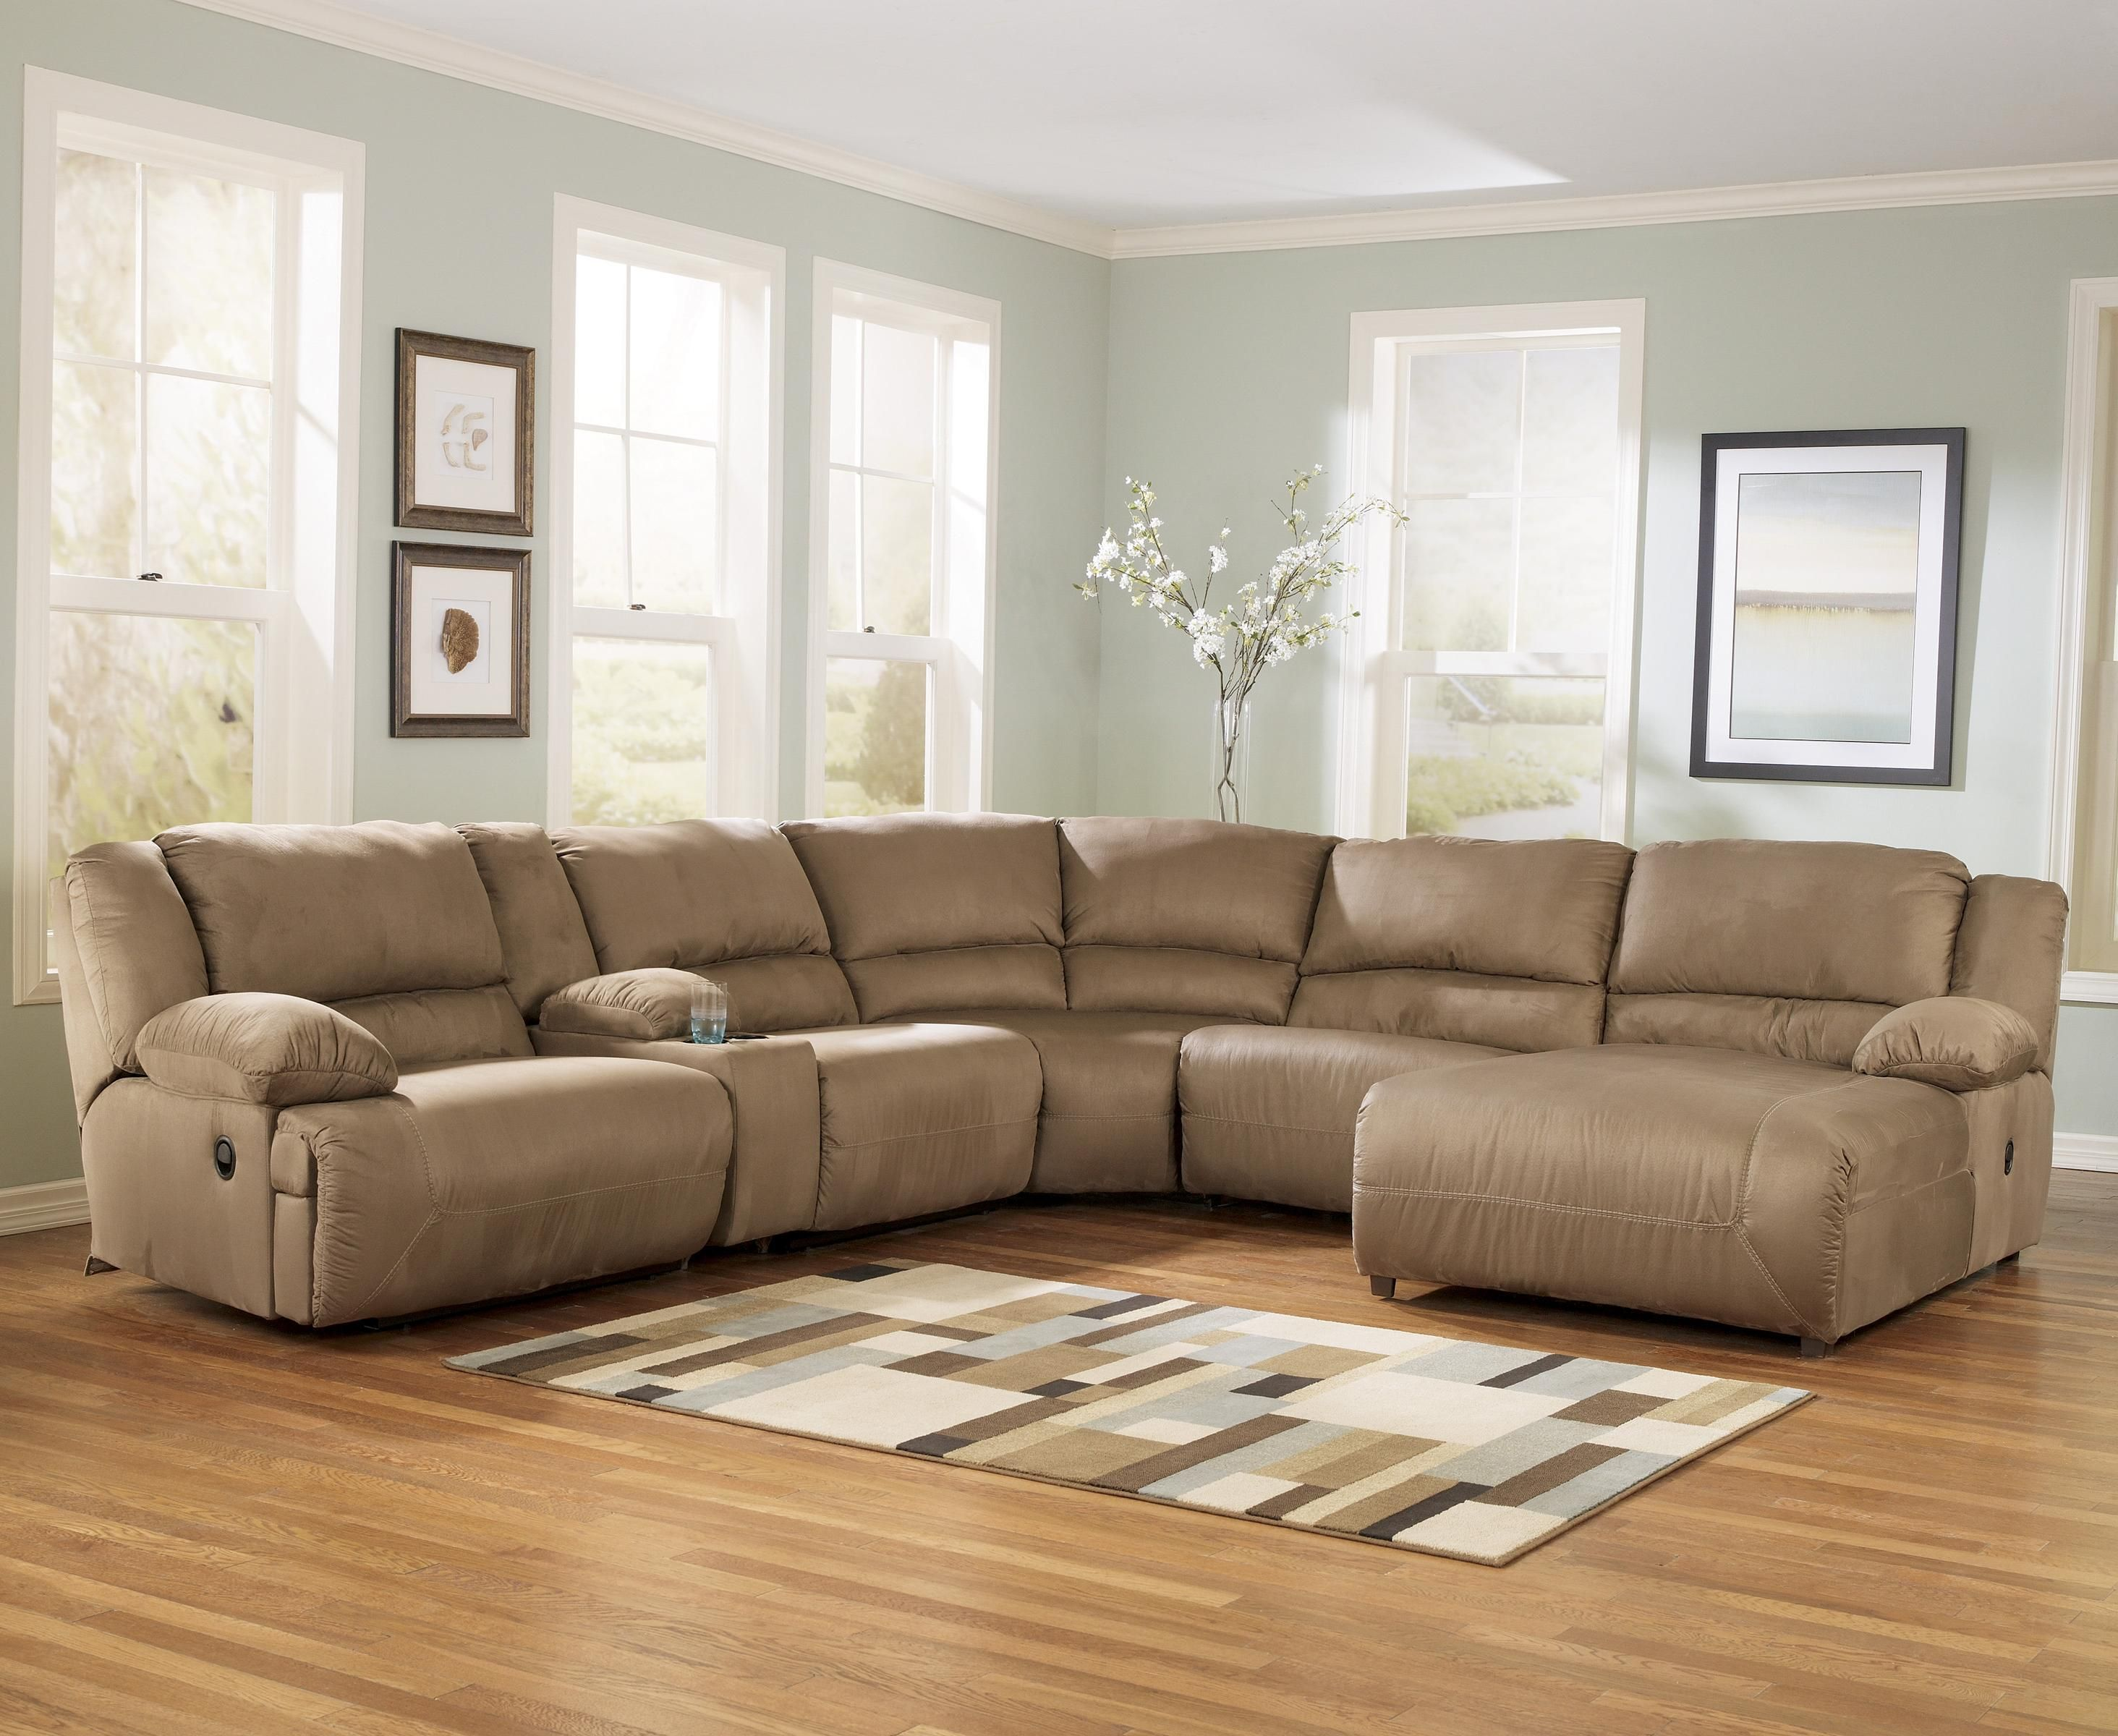 Best Hogan Mocha 6 Piece Motion Sectional With Right Chaise 640 x 480